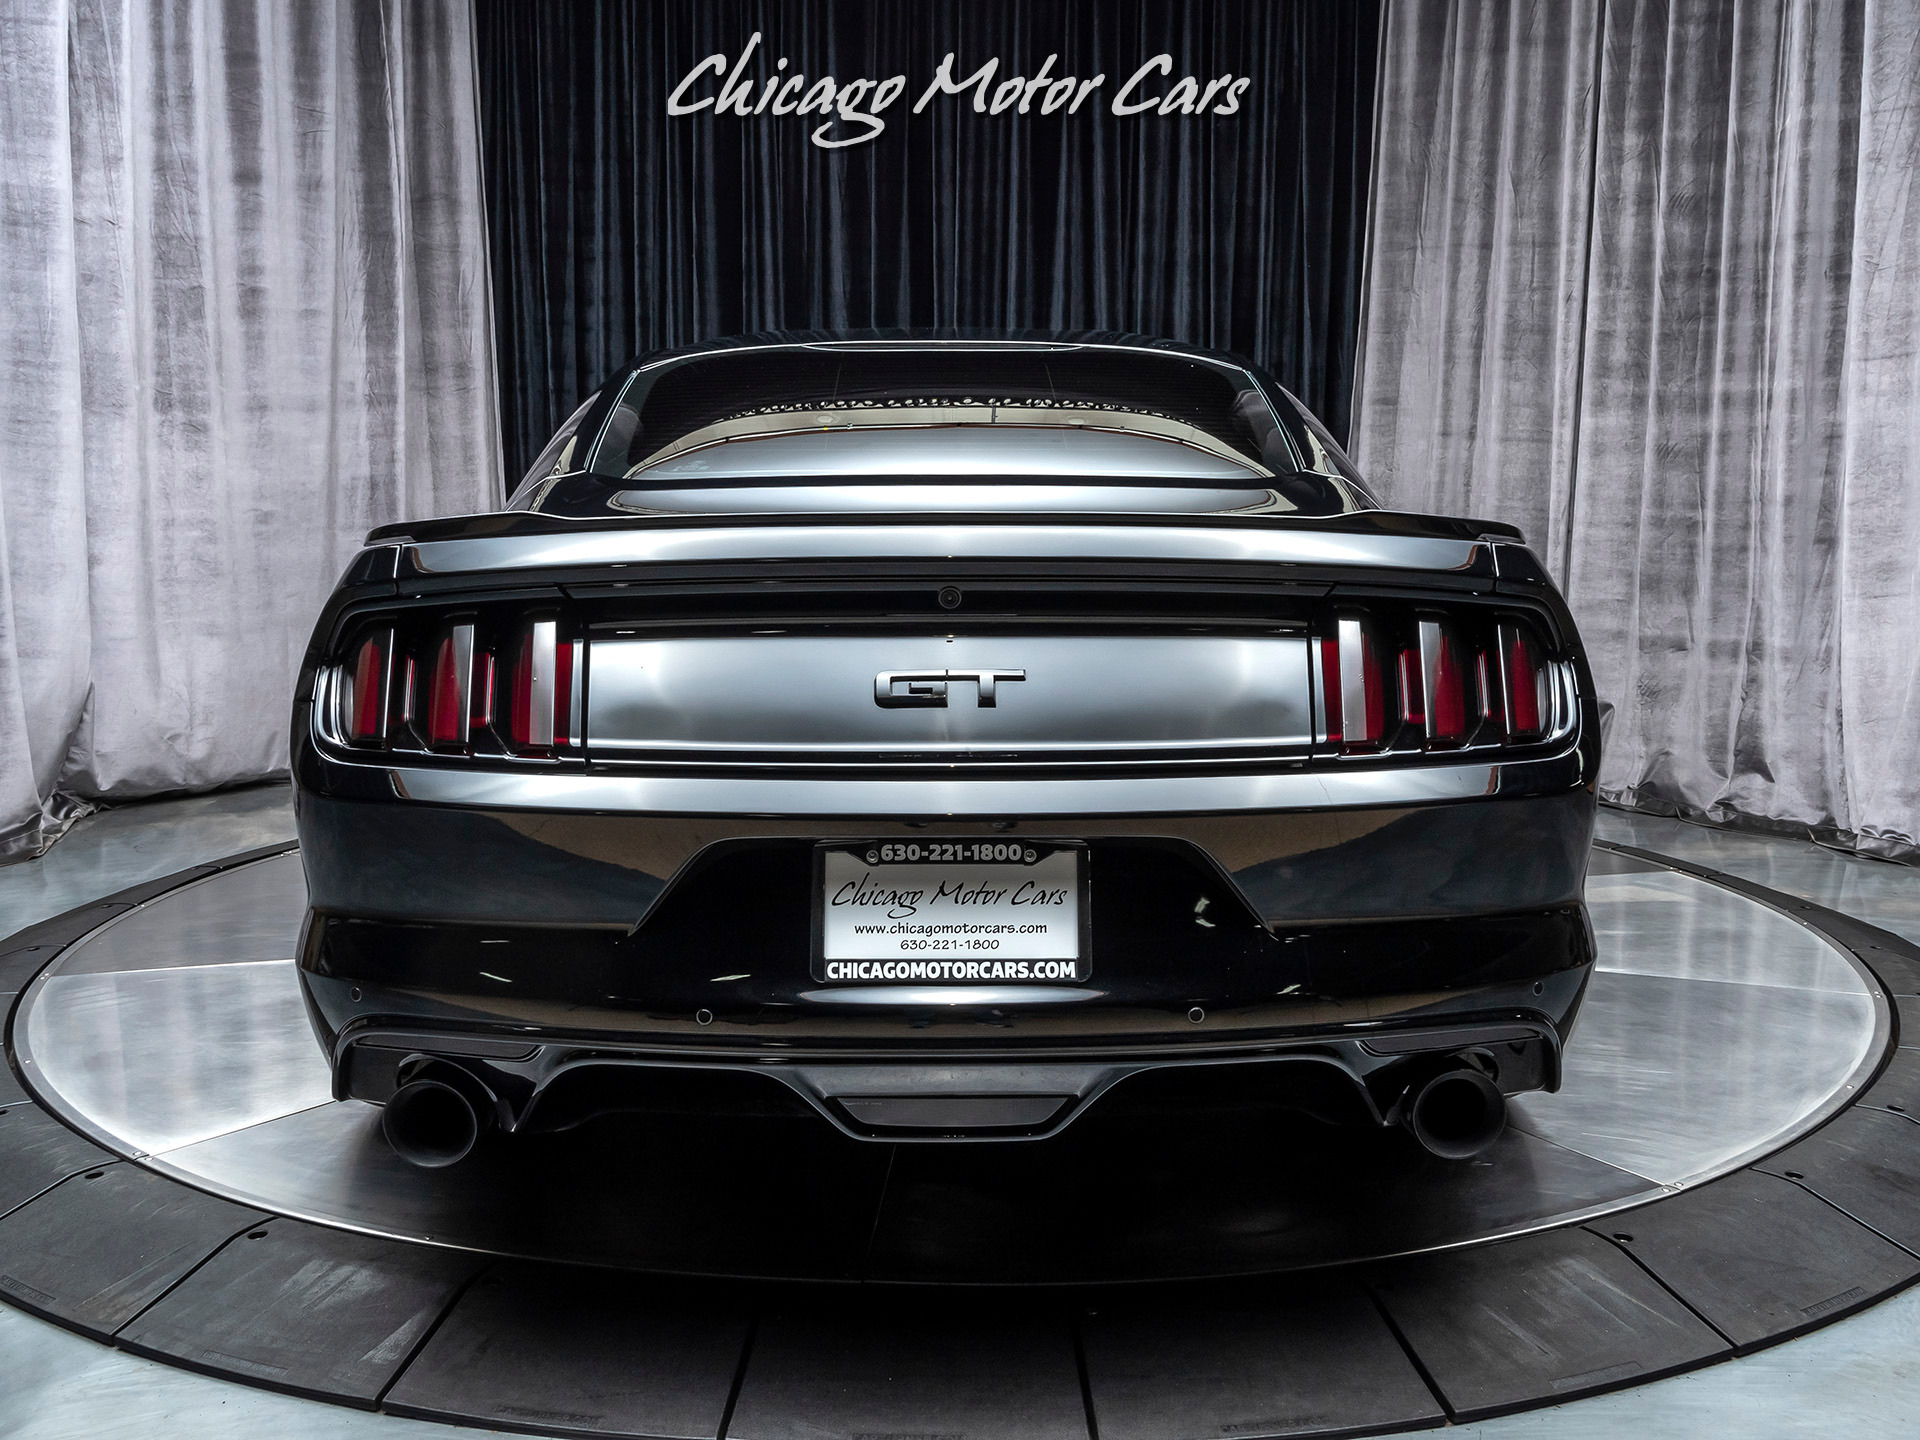 2017 ford mustang gt owners manual